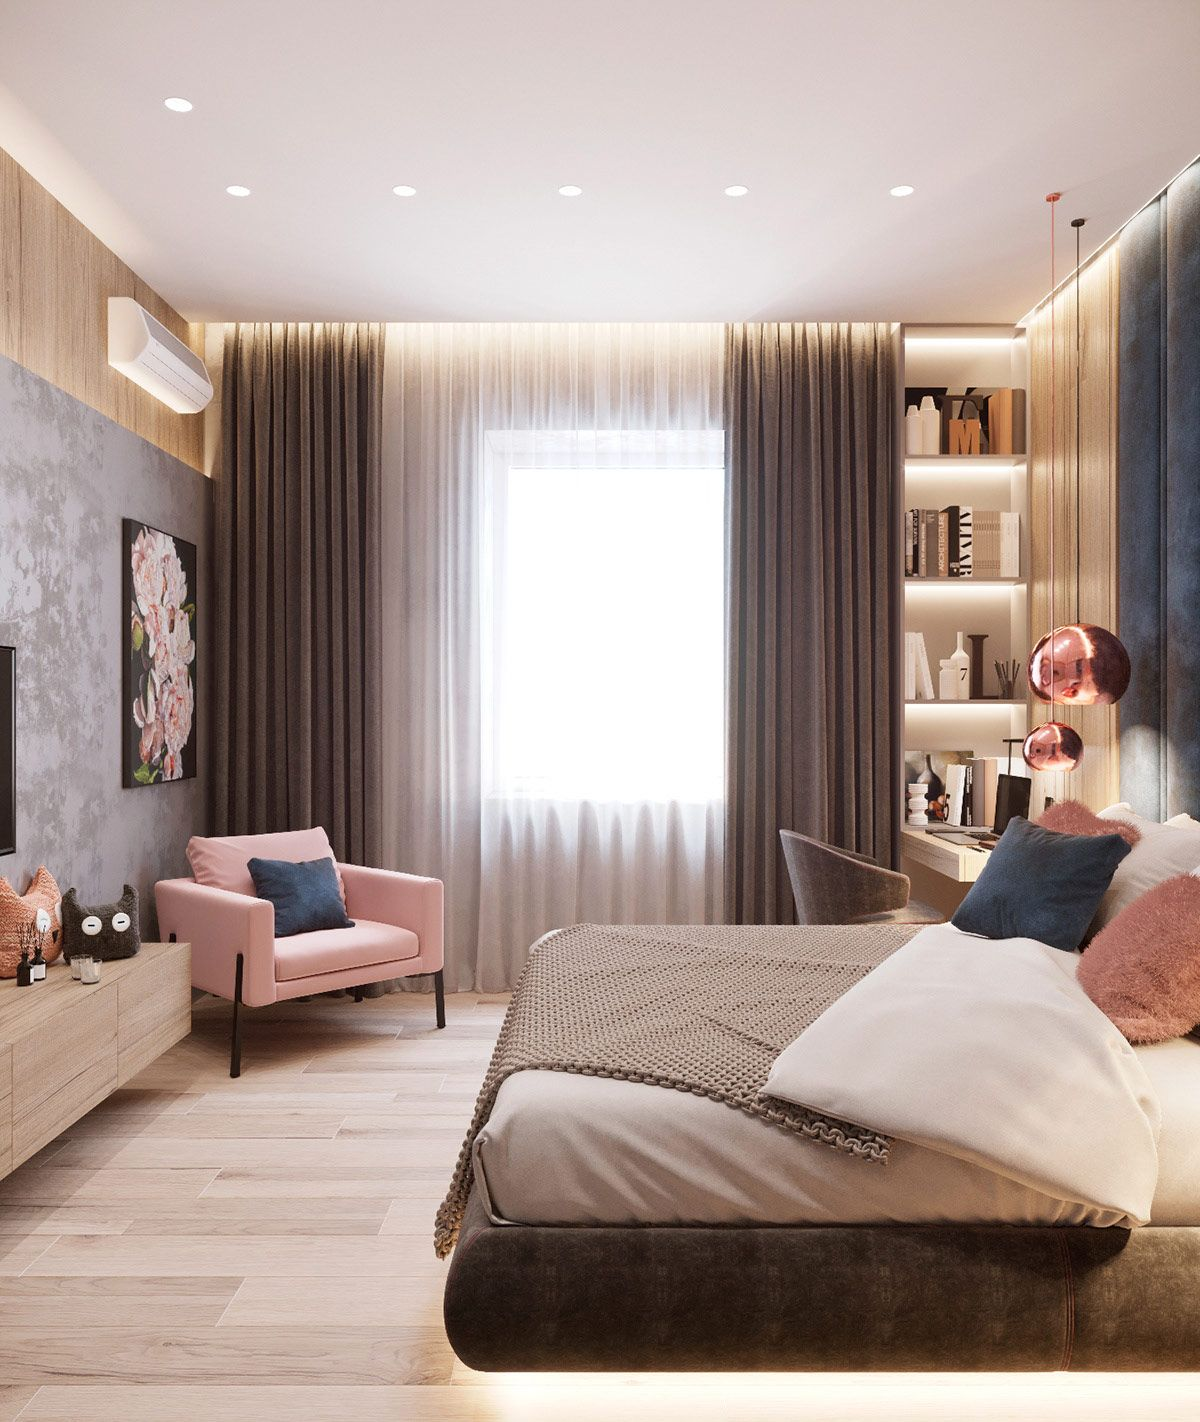 First Class Family Home With Blue Pink And Gold Decor Home Room Design Luxurious Bedrooms Bedroom Decor